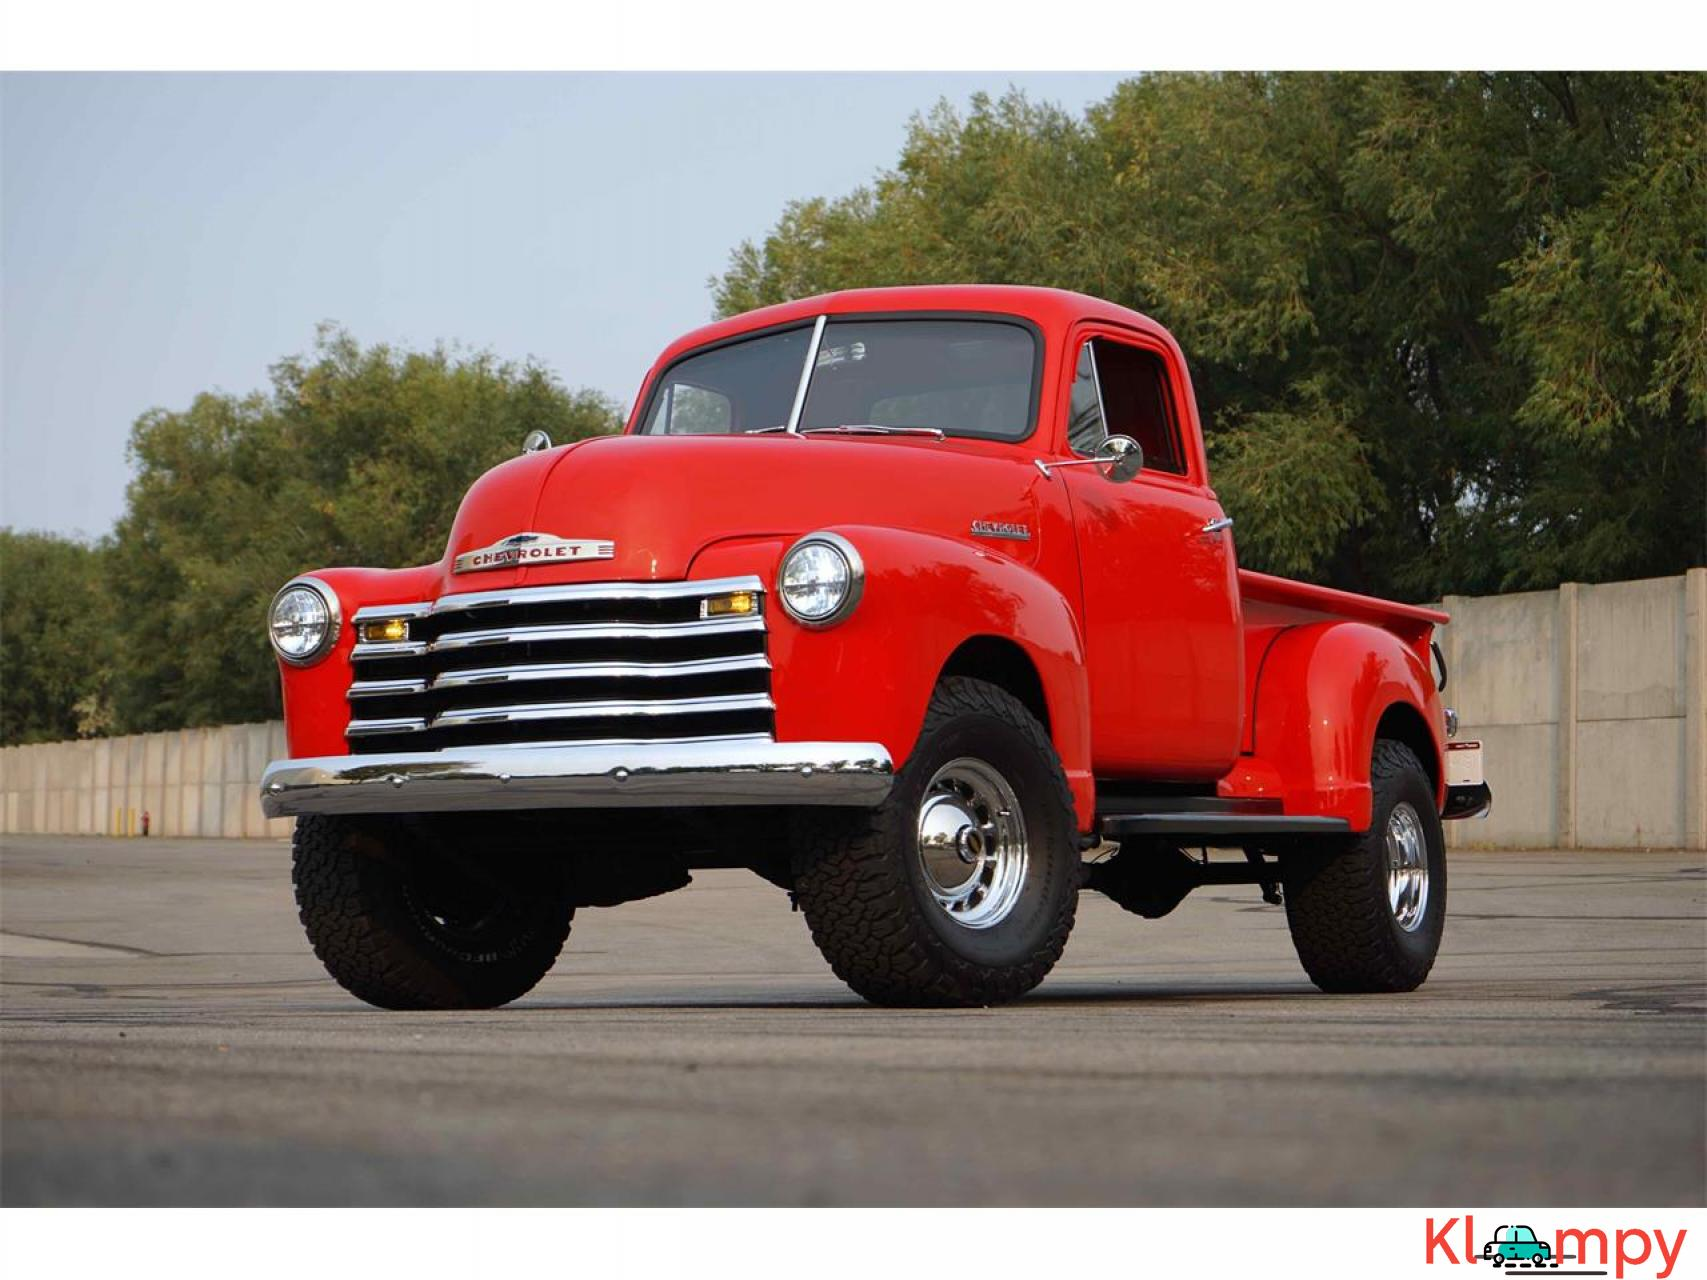 1951 Chevrolet 3100 350 V8 with a B&M Supercharger - 1/17